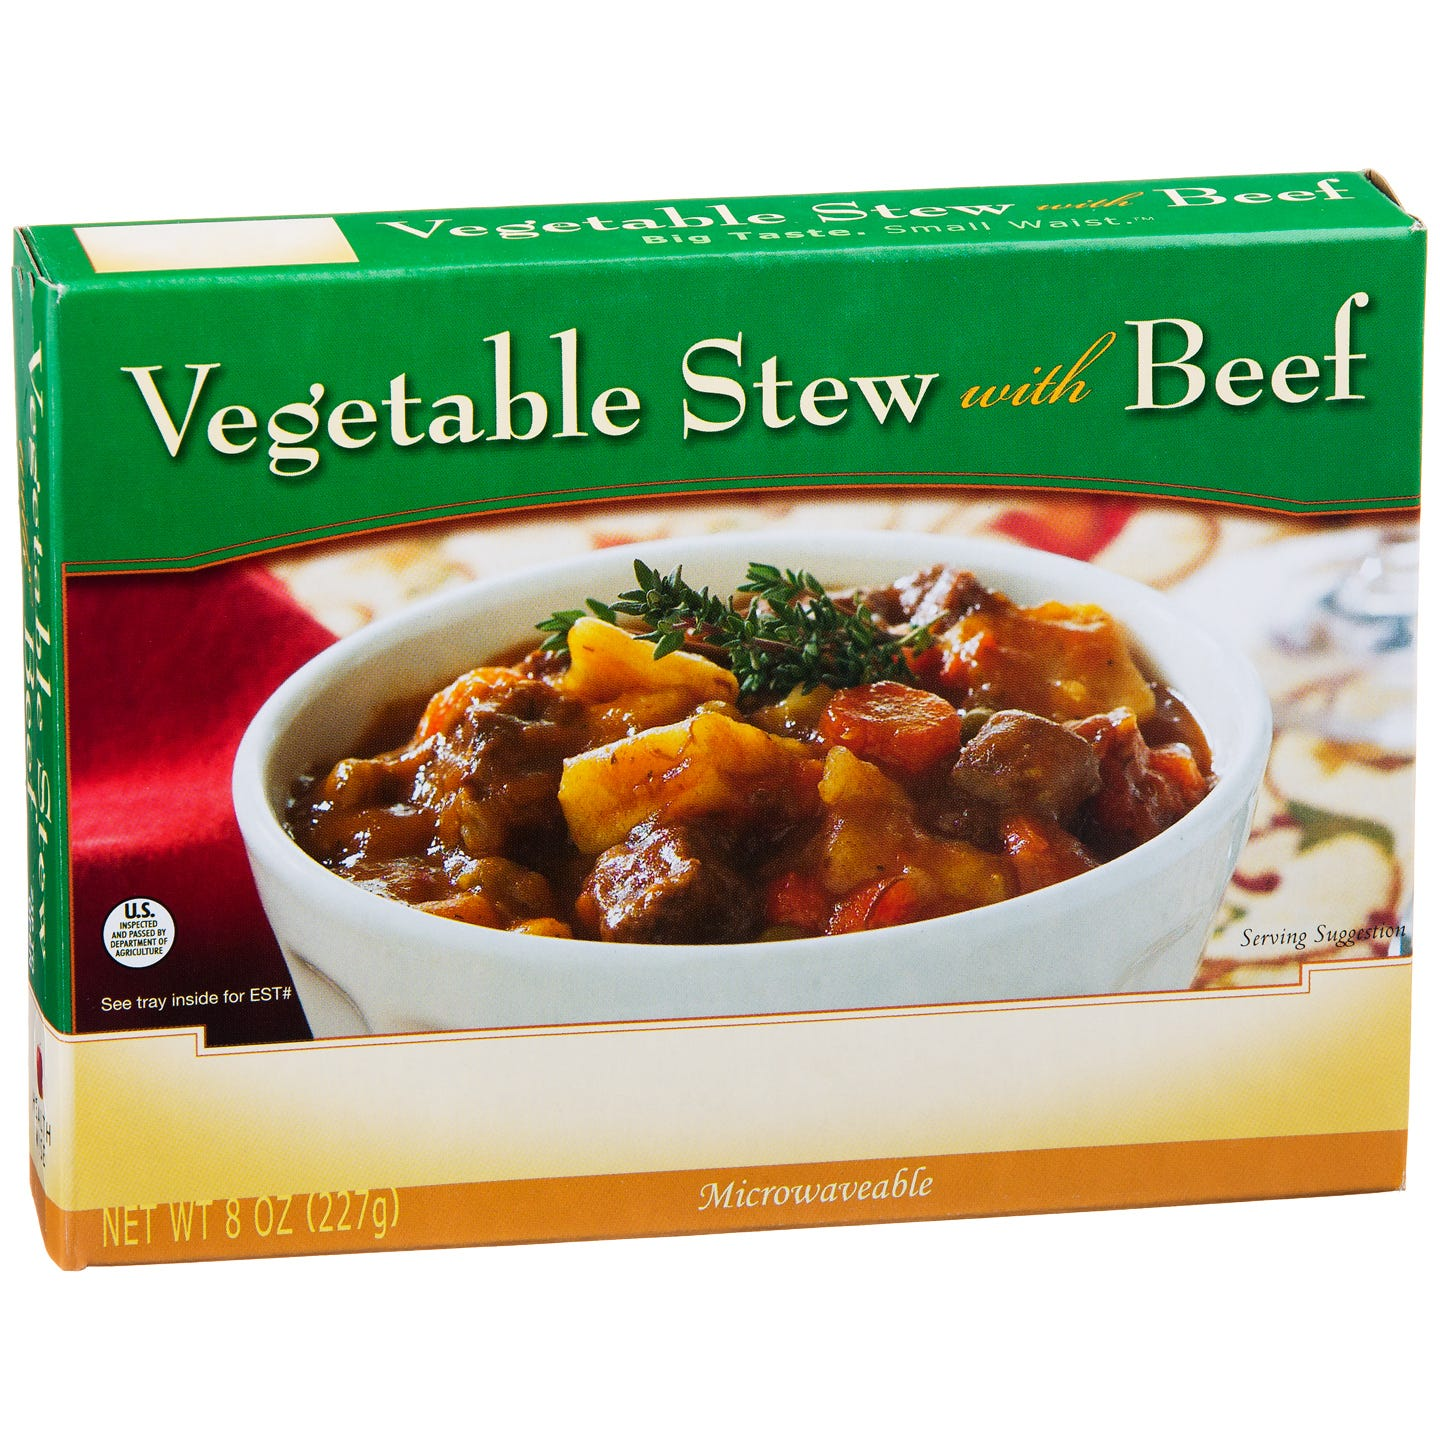 BariWise Vegetable Stew with Beef, (8oz)